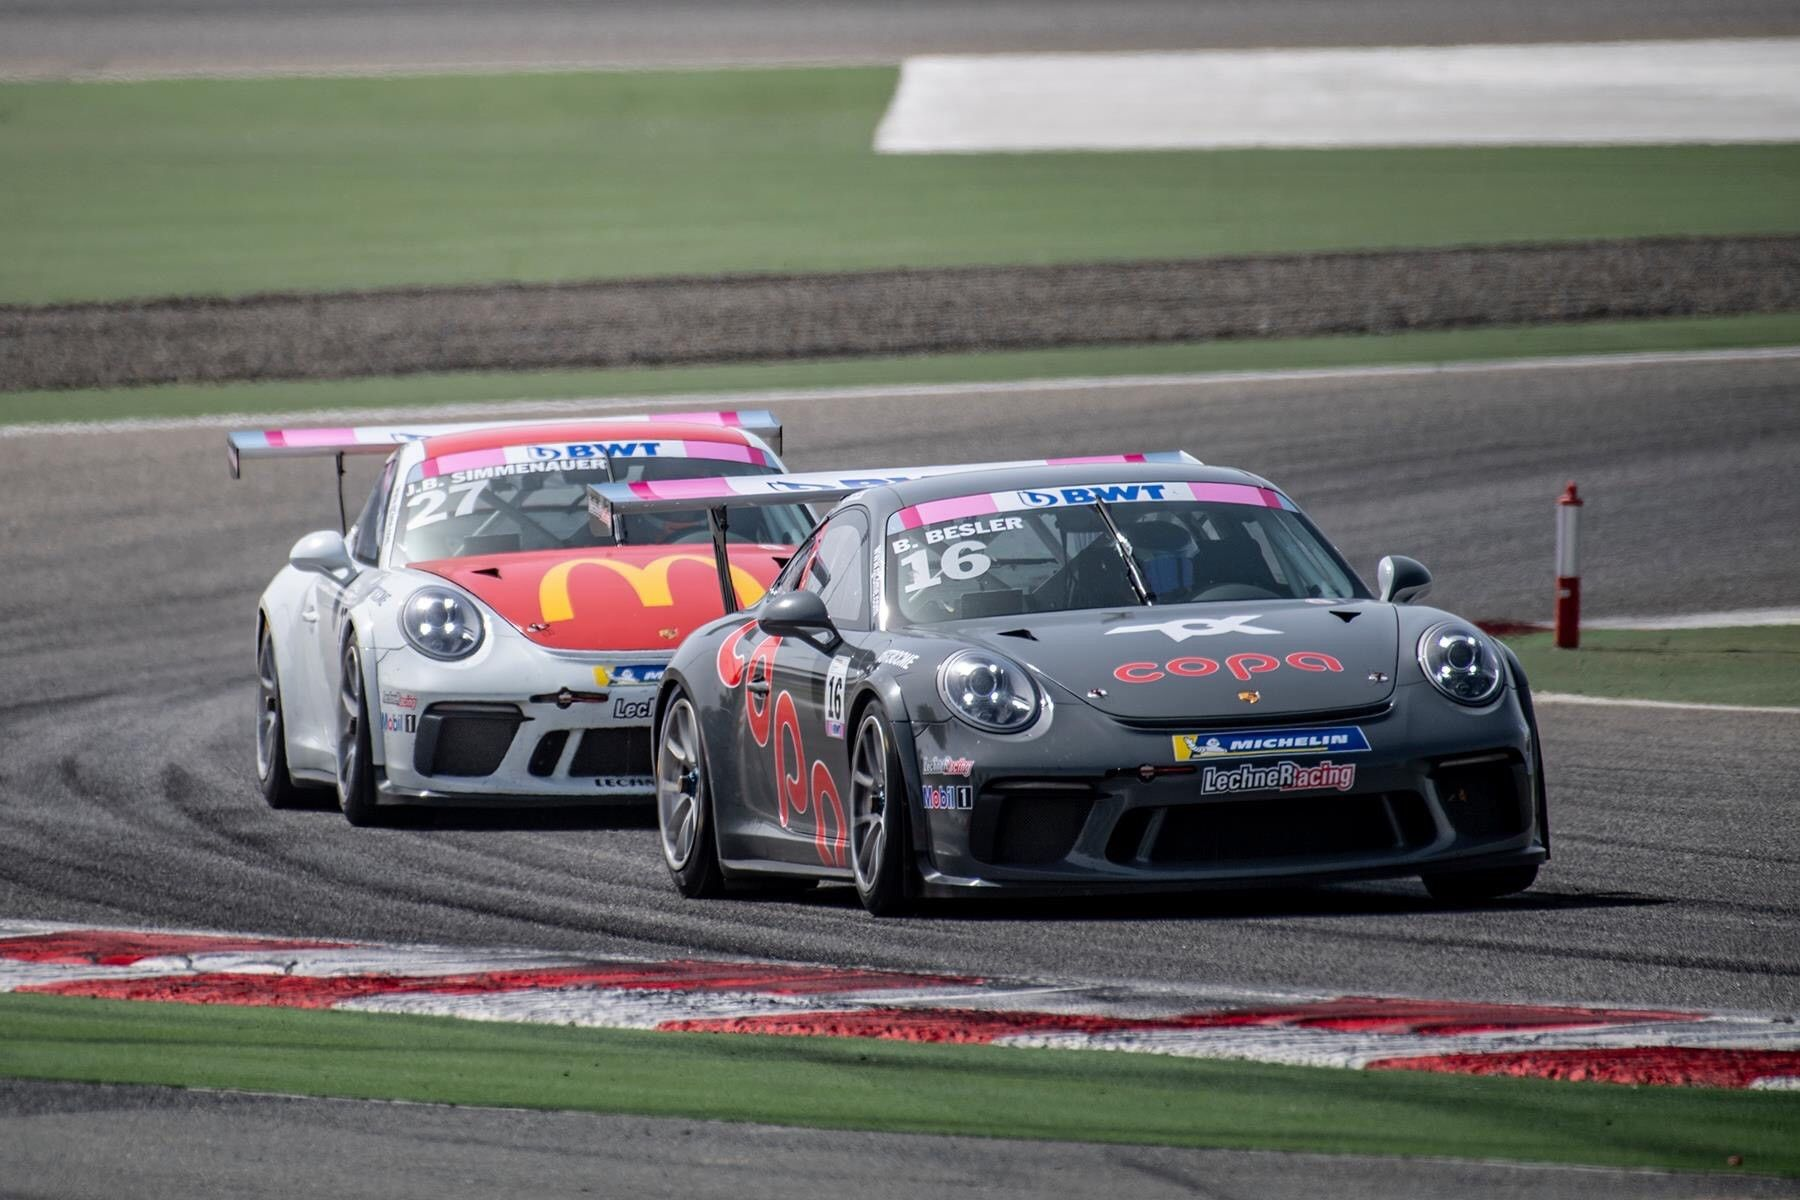 Besler gets his first win at GT3 Cup Middle East